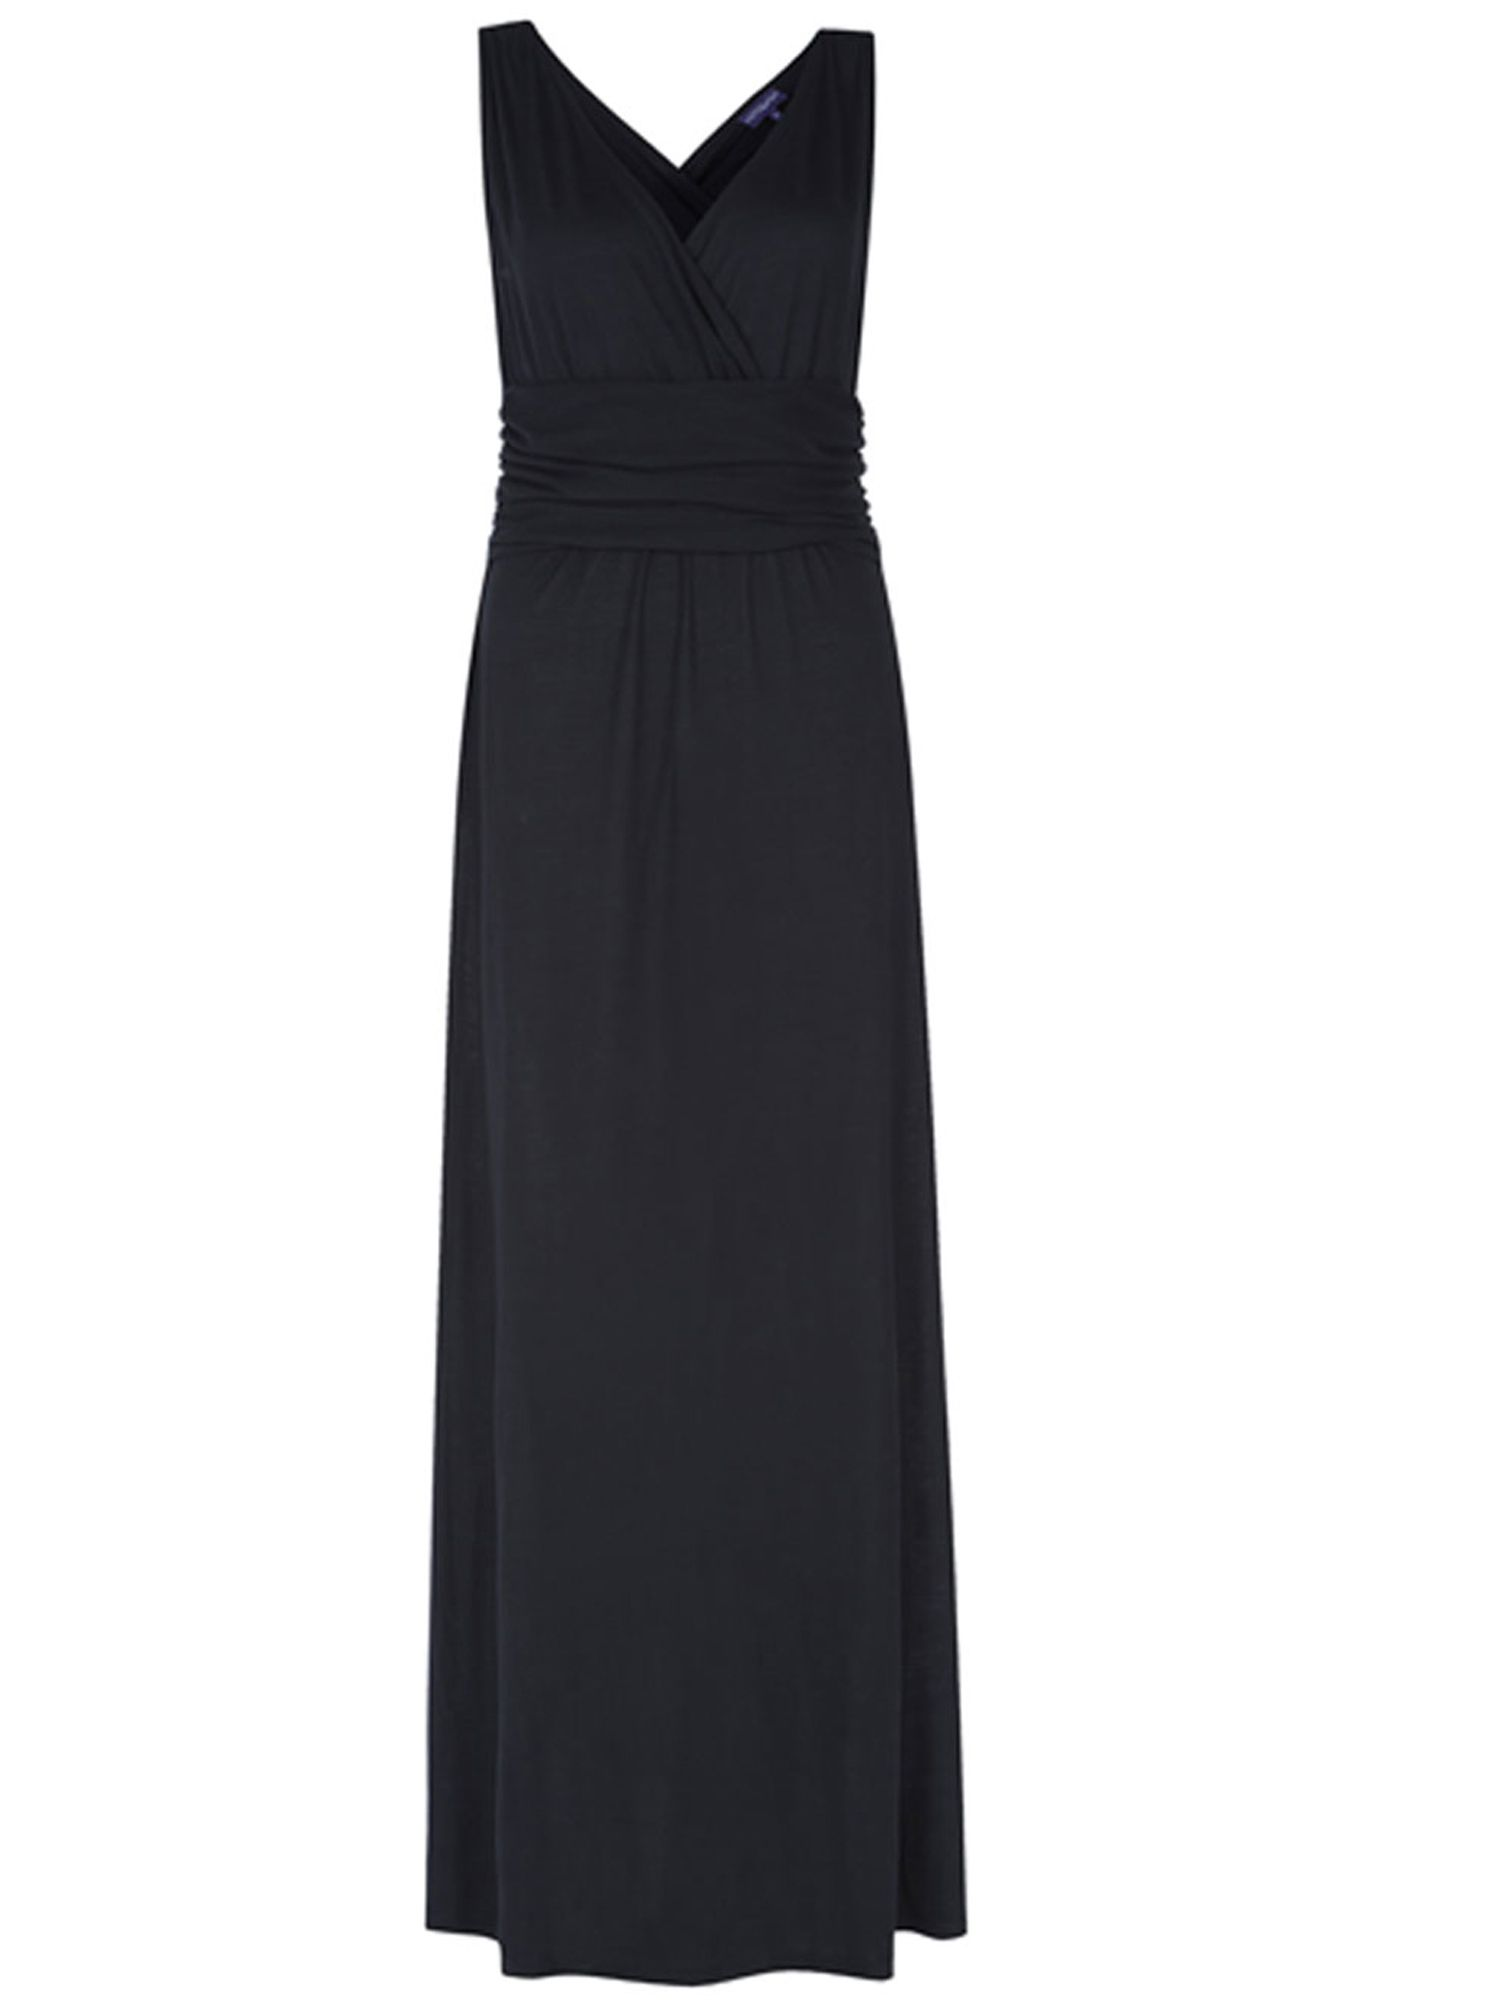 HotSquash V Neck Maxi Dress In CoolFresh Fabric, Black